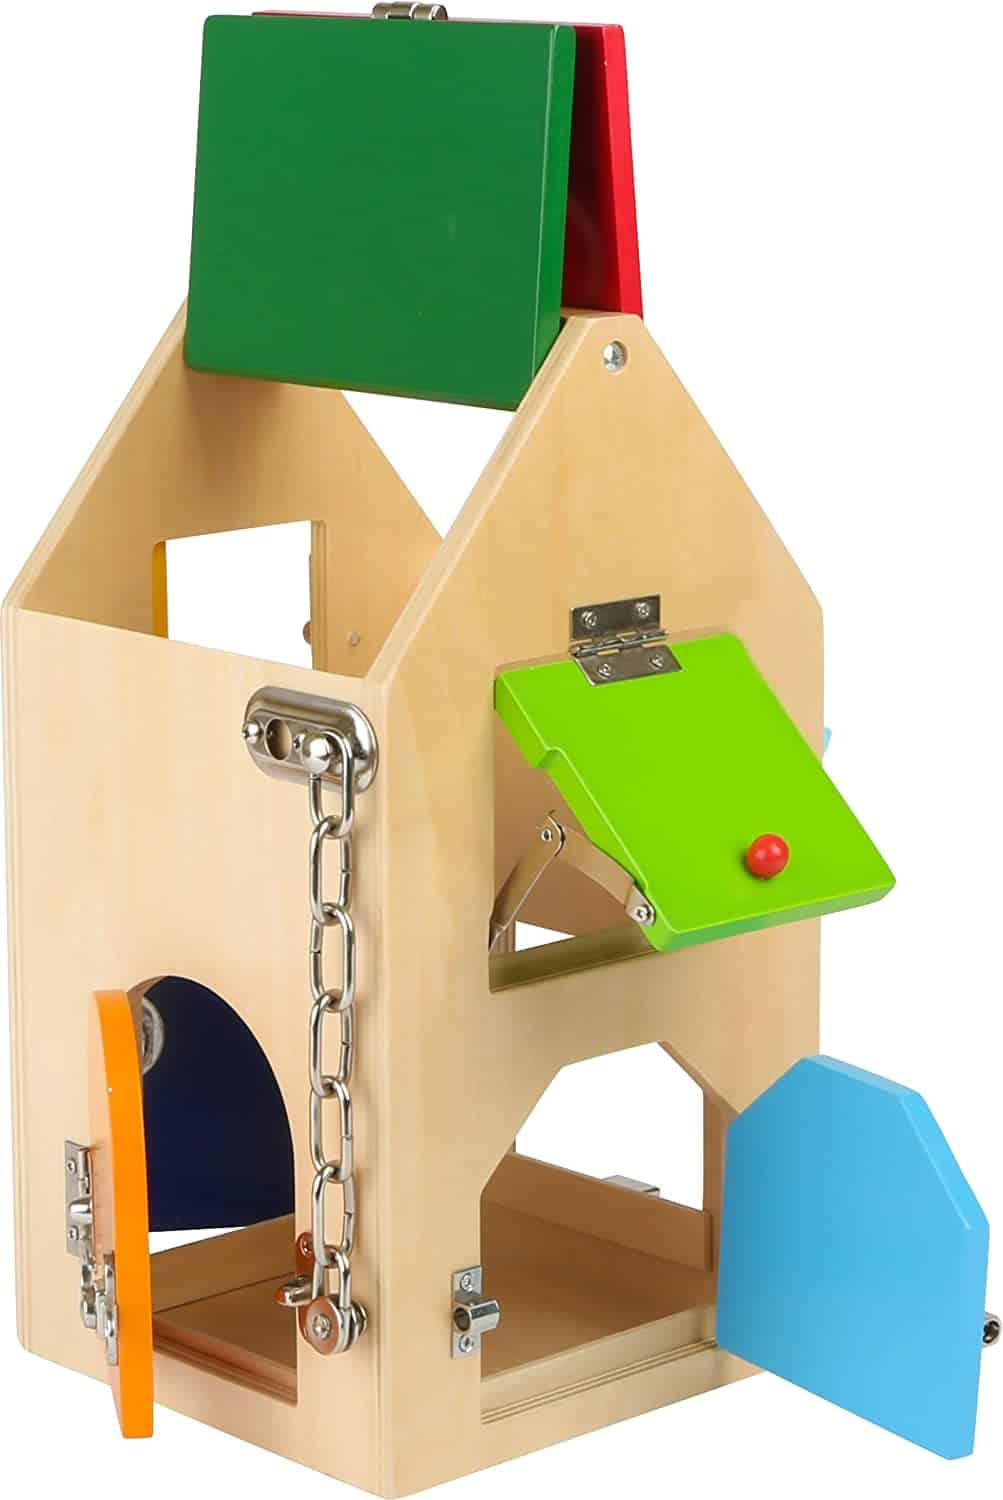 Wooden play house with doors and locks from Small Foot Company